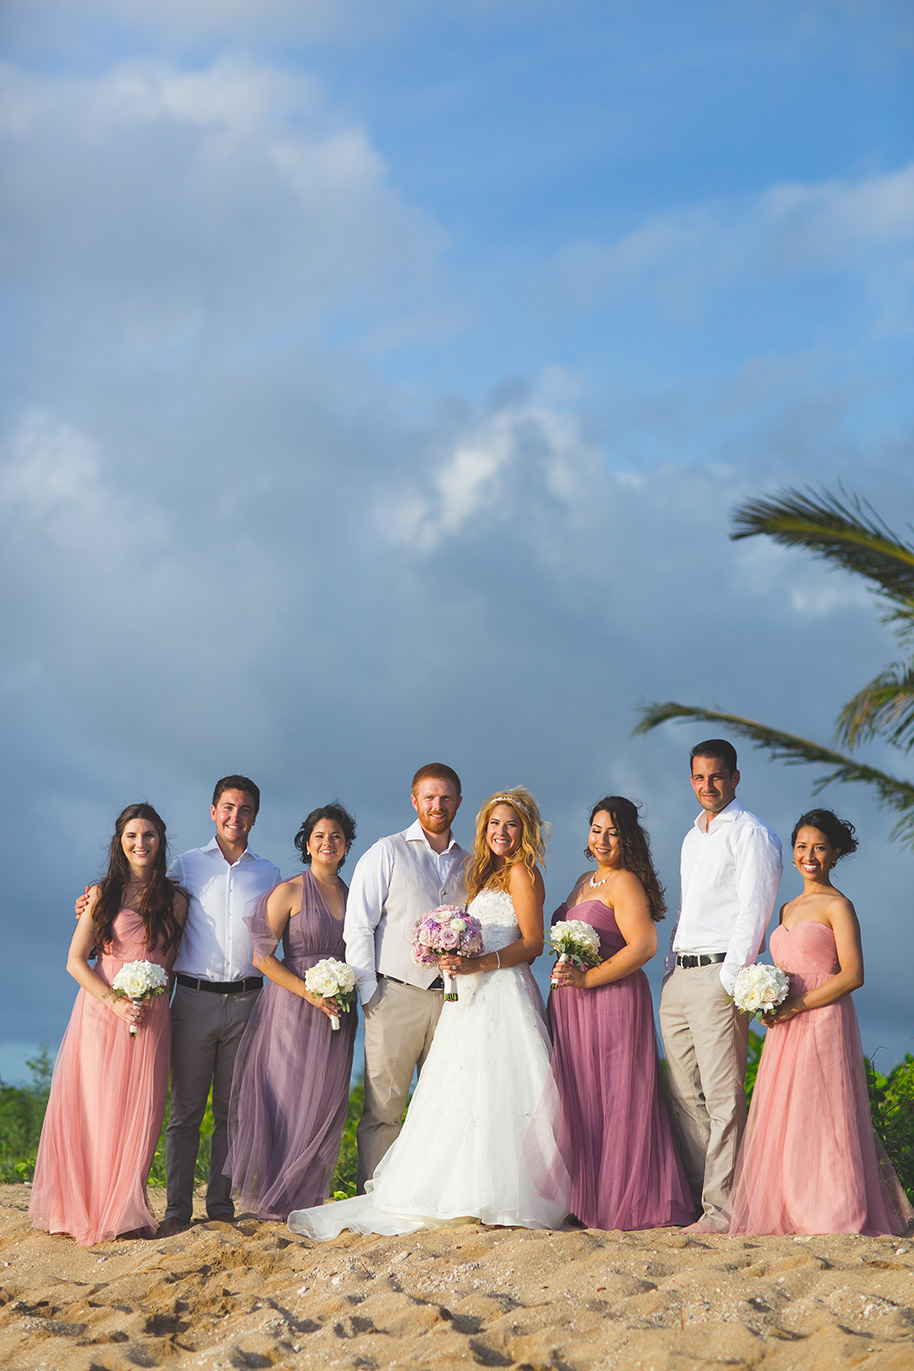 Maui-Beach-Wedding-042816-24